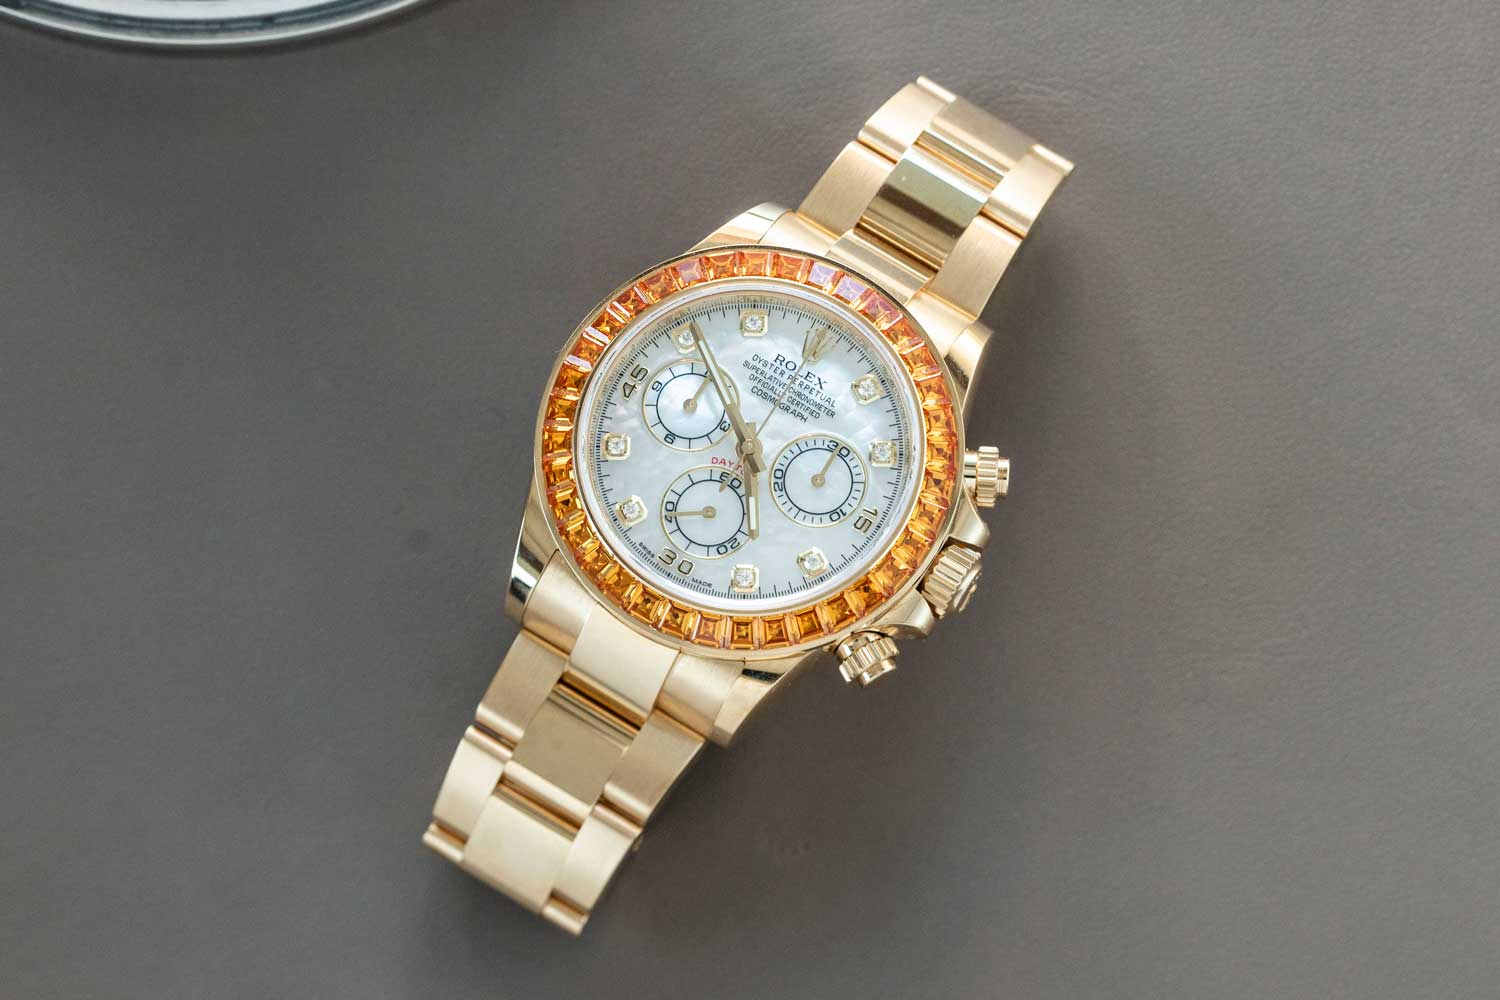 The Rolex Daytona ref. 116578 SACO with an orange sapphire-set bezel (©Revolution)